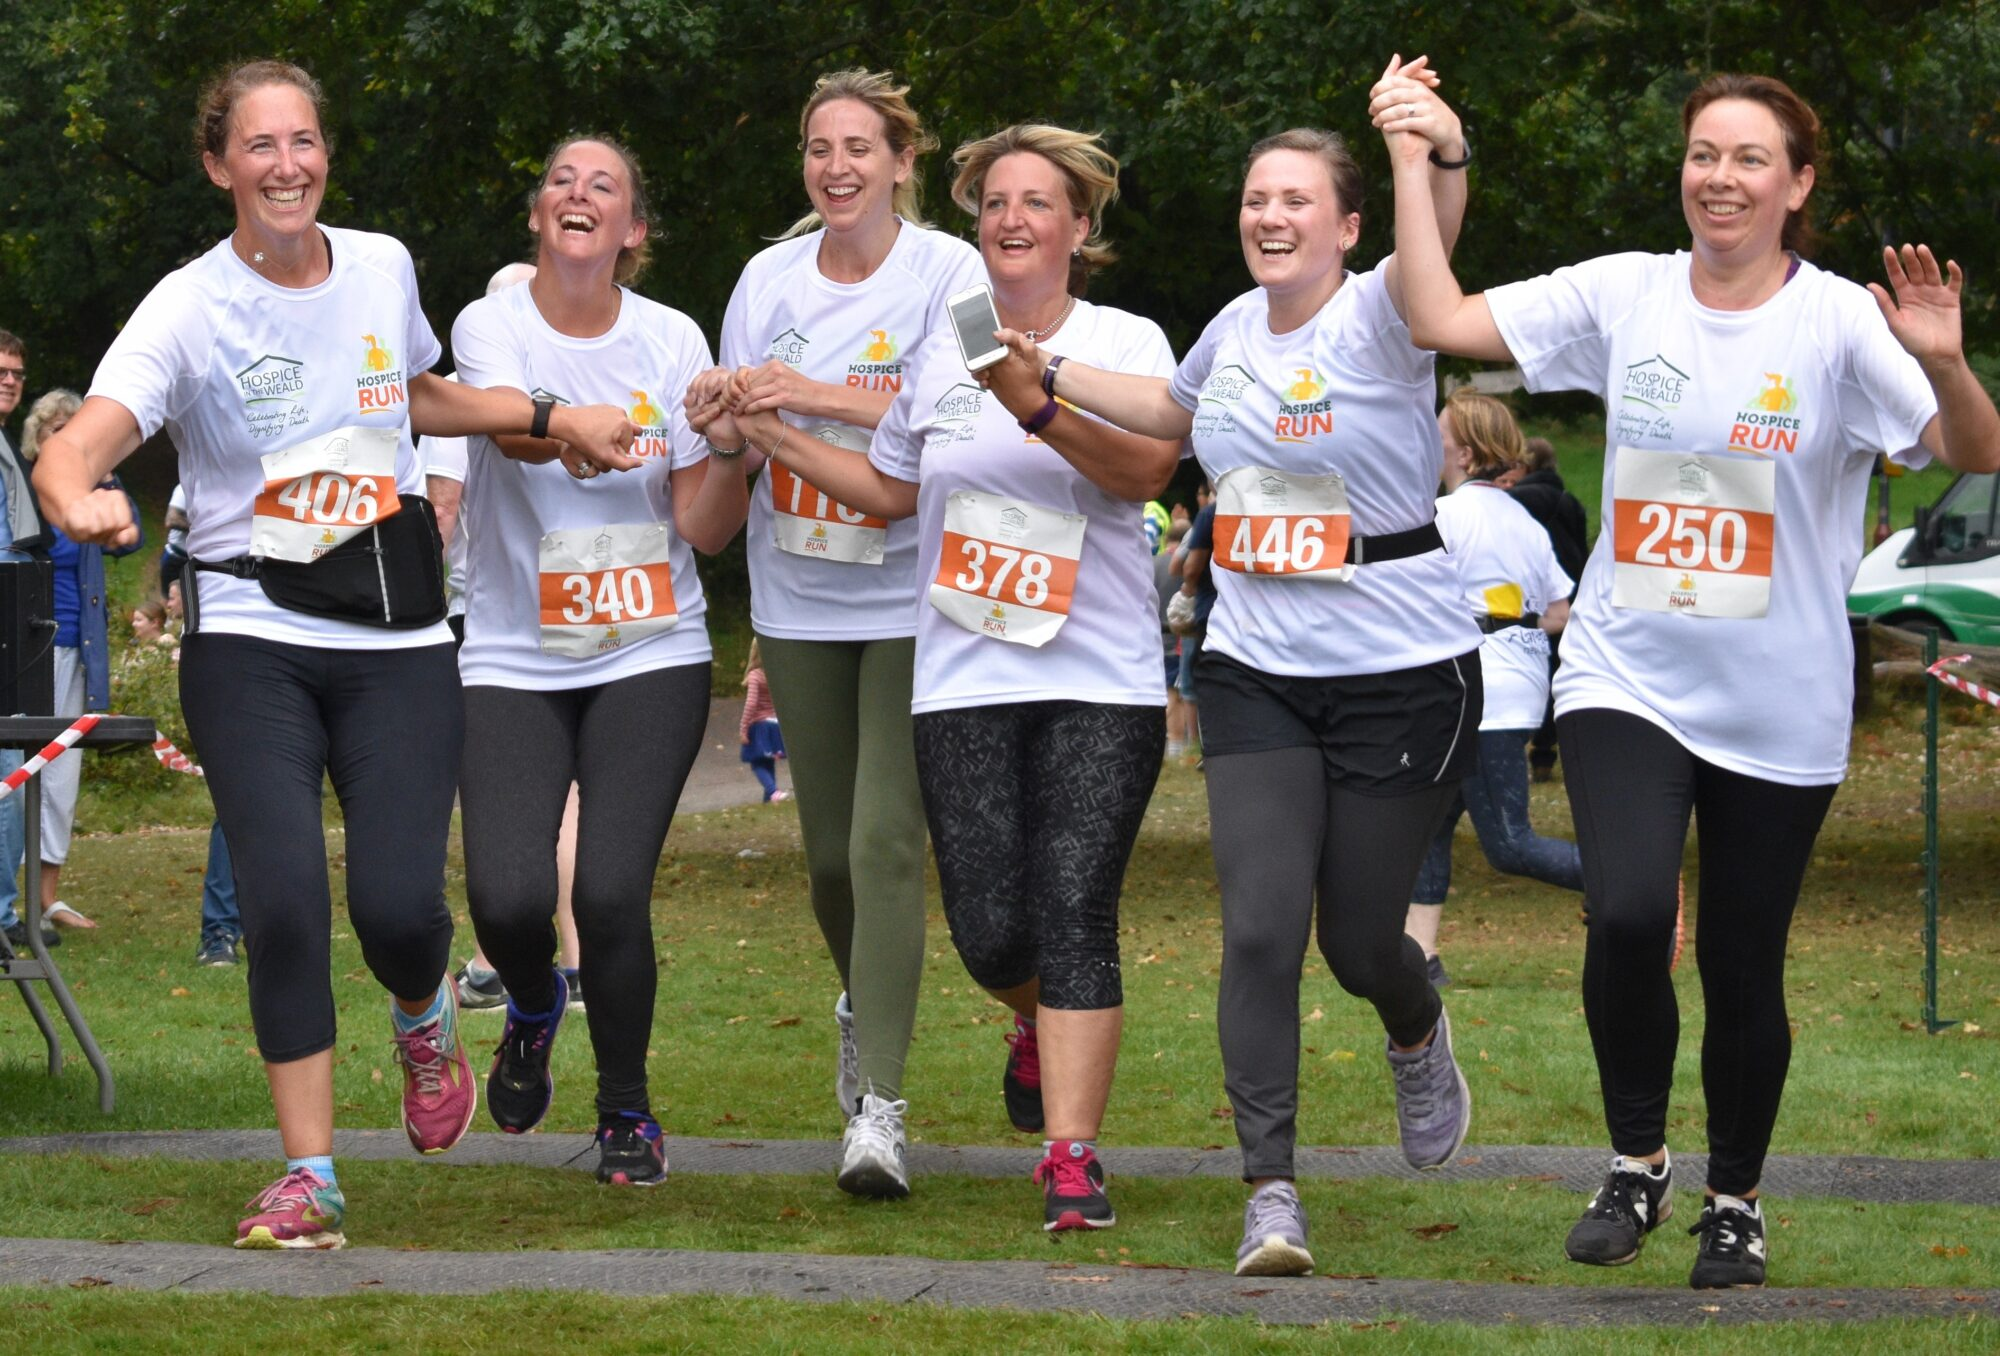 Row of Runners at Hospice Run